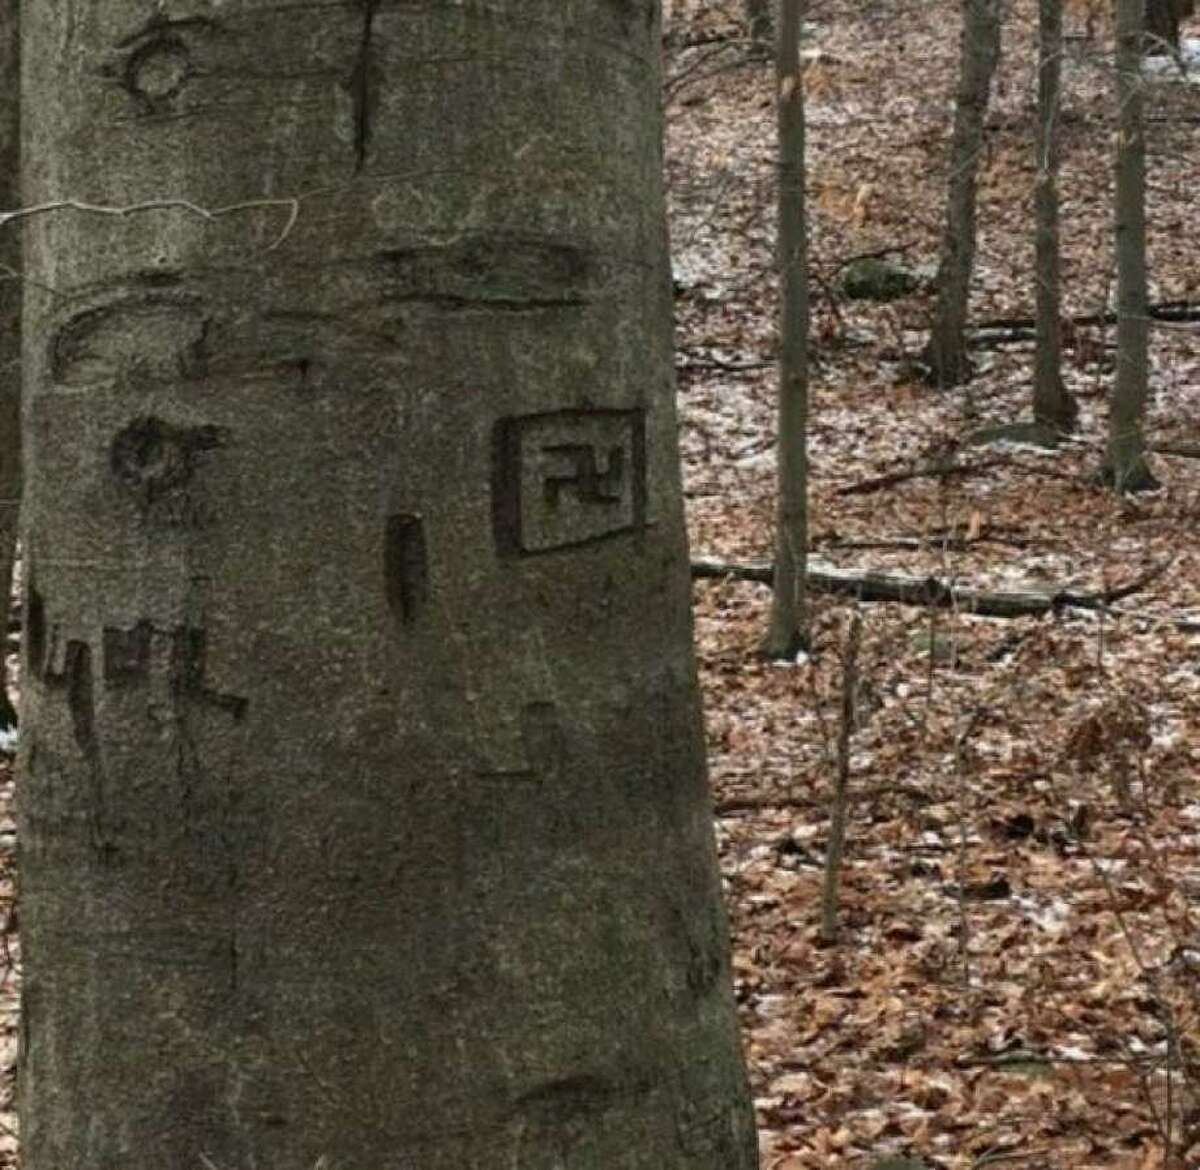 A swastika was carved onto a tree in Topstone Park in Redding.